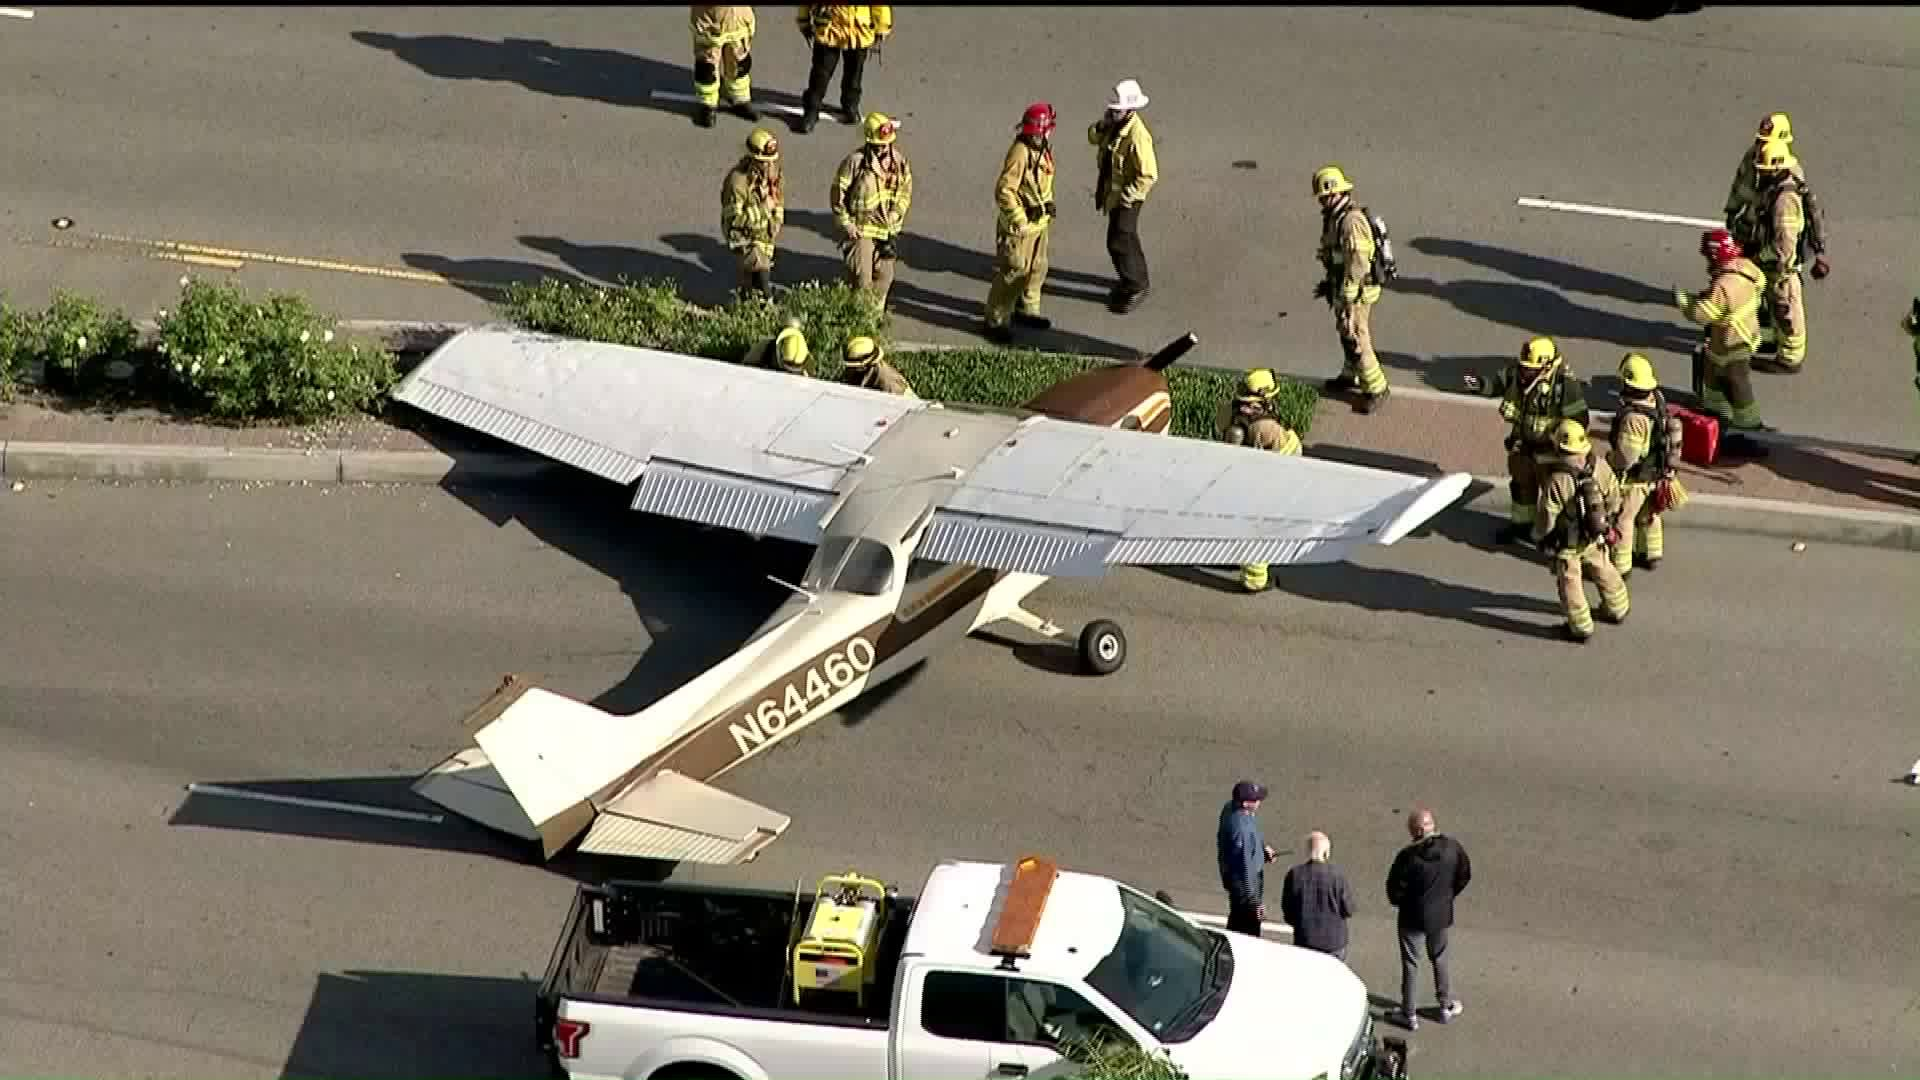 A small airplane made an emergency landing on Fullerton streets on June 20, 2019. (Credit: KTLA)